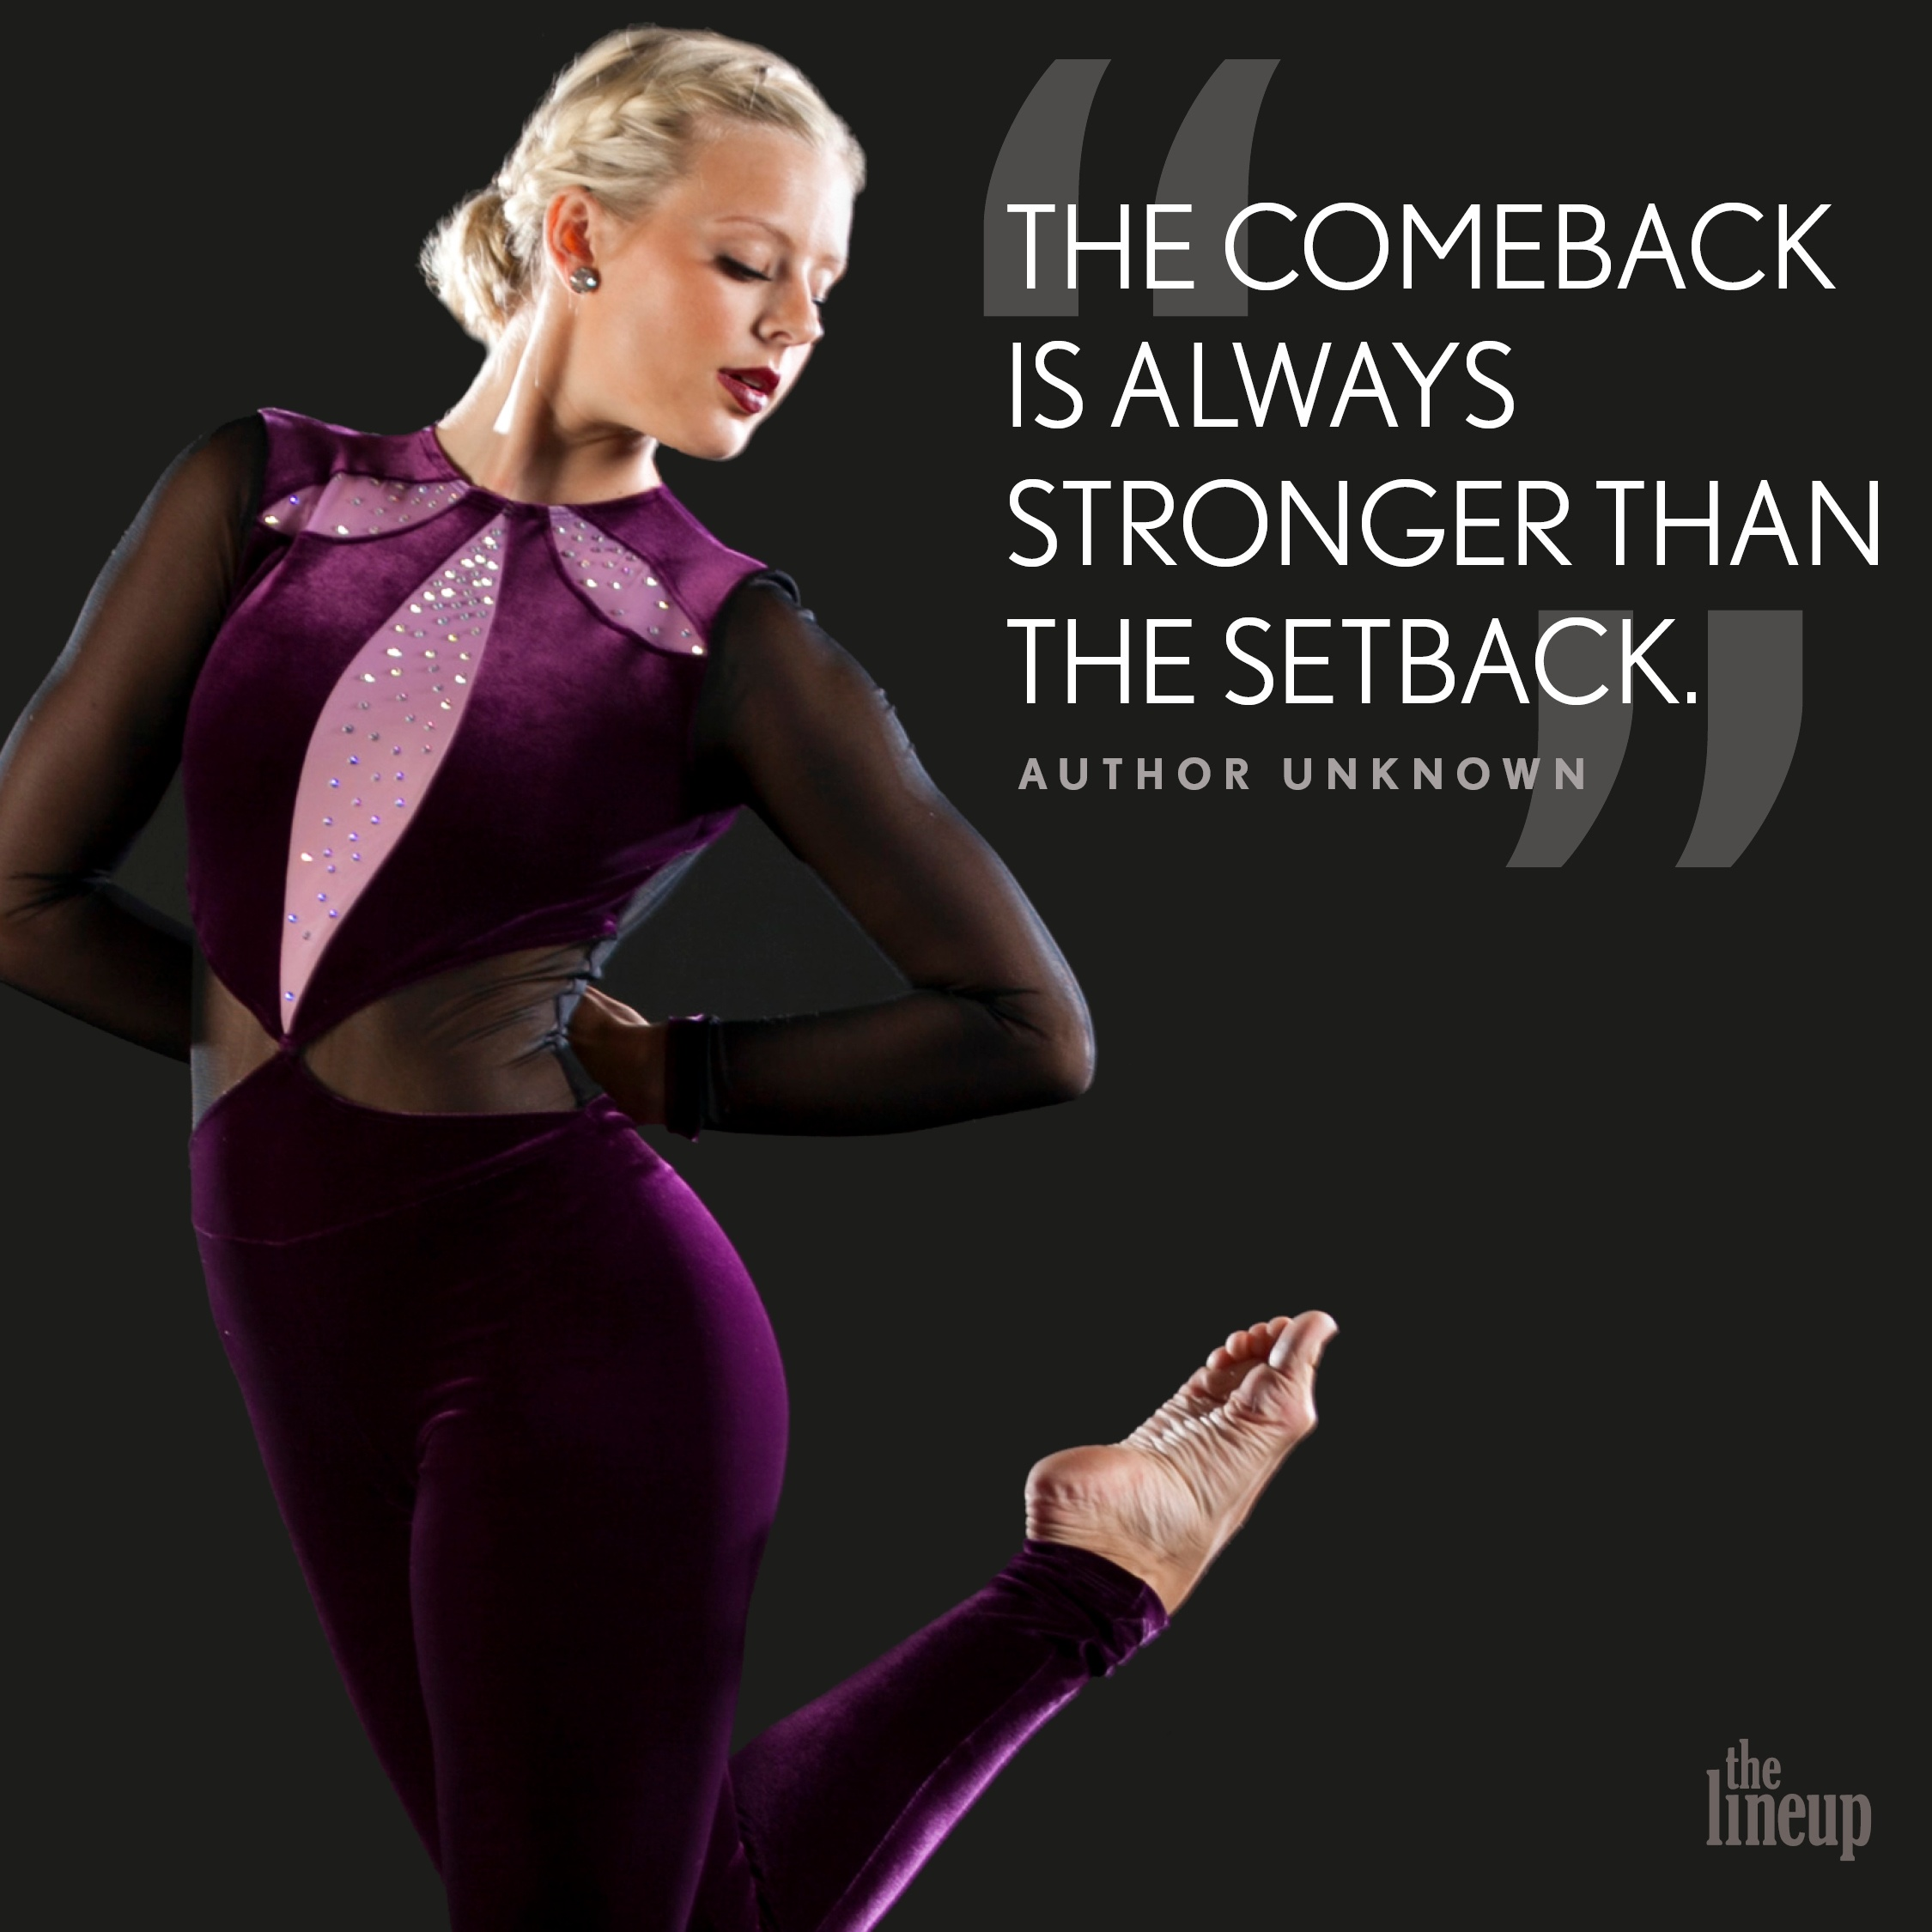 """""""The comeback is always stronger than the setback."""" - Author Unknown Motivational Quotes for Dancers"""